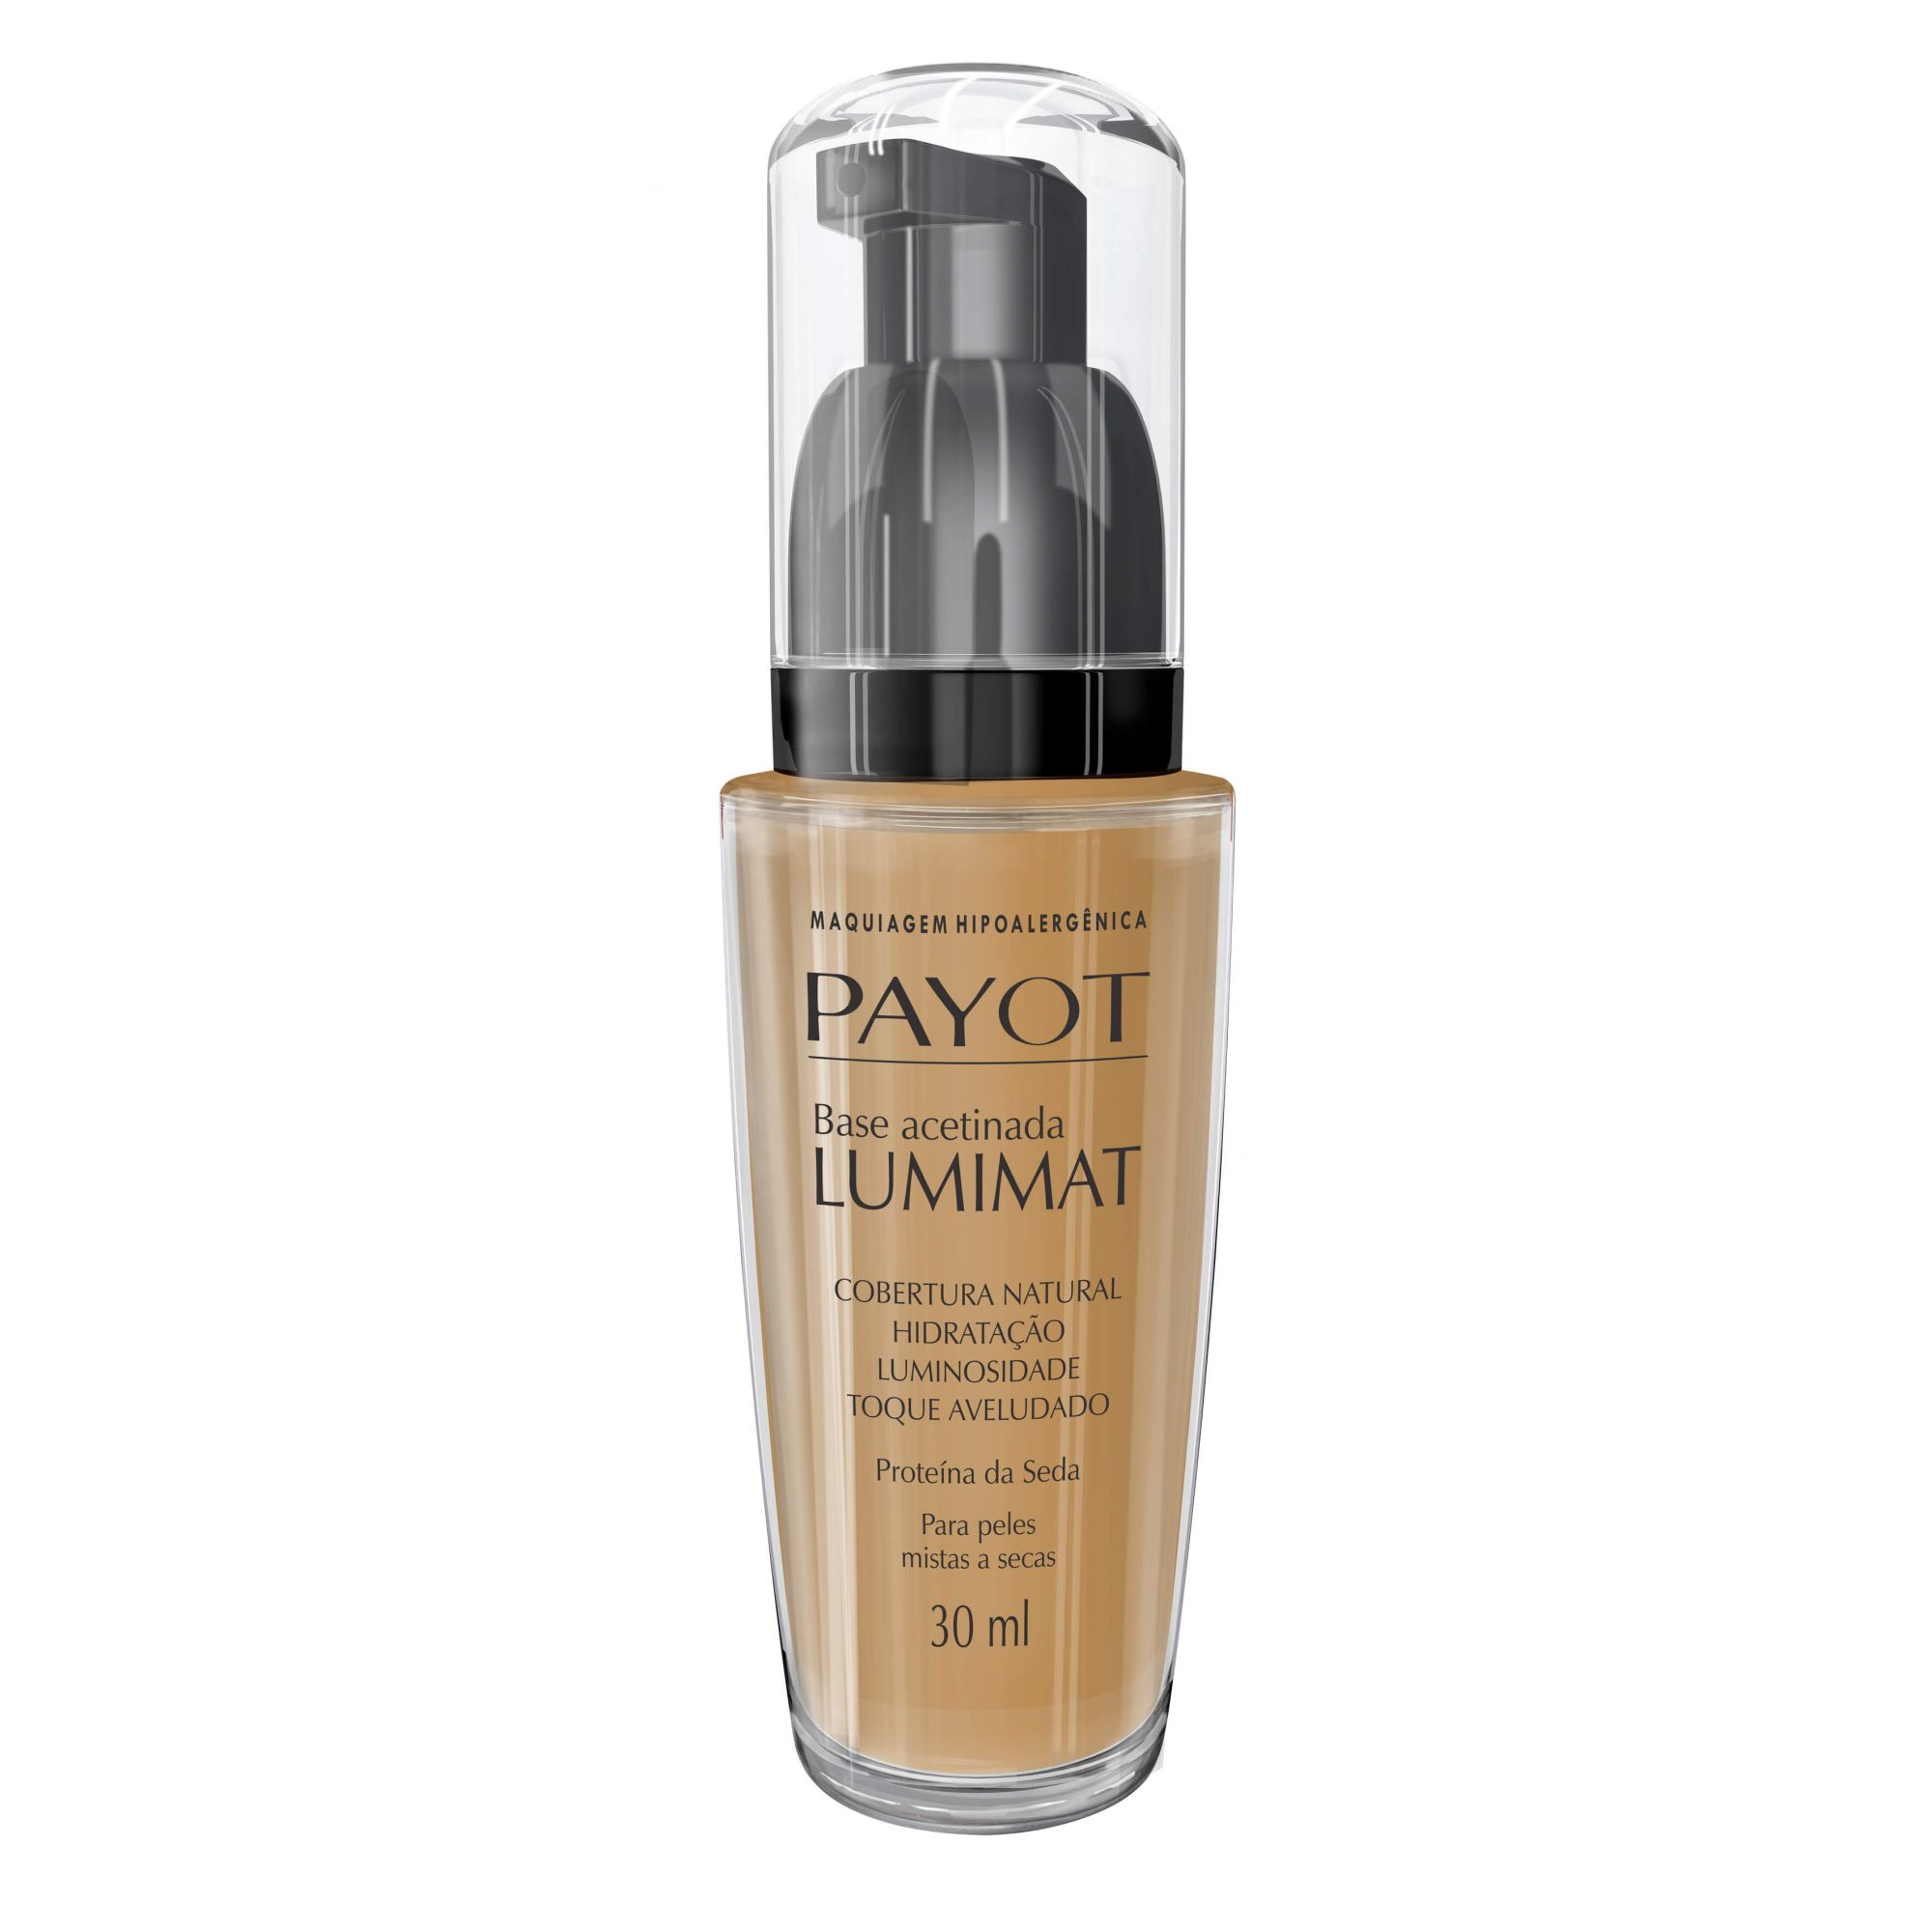 Base Líquida Lumimat Payot - 30ml